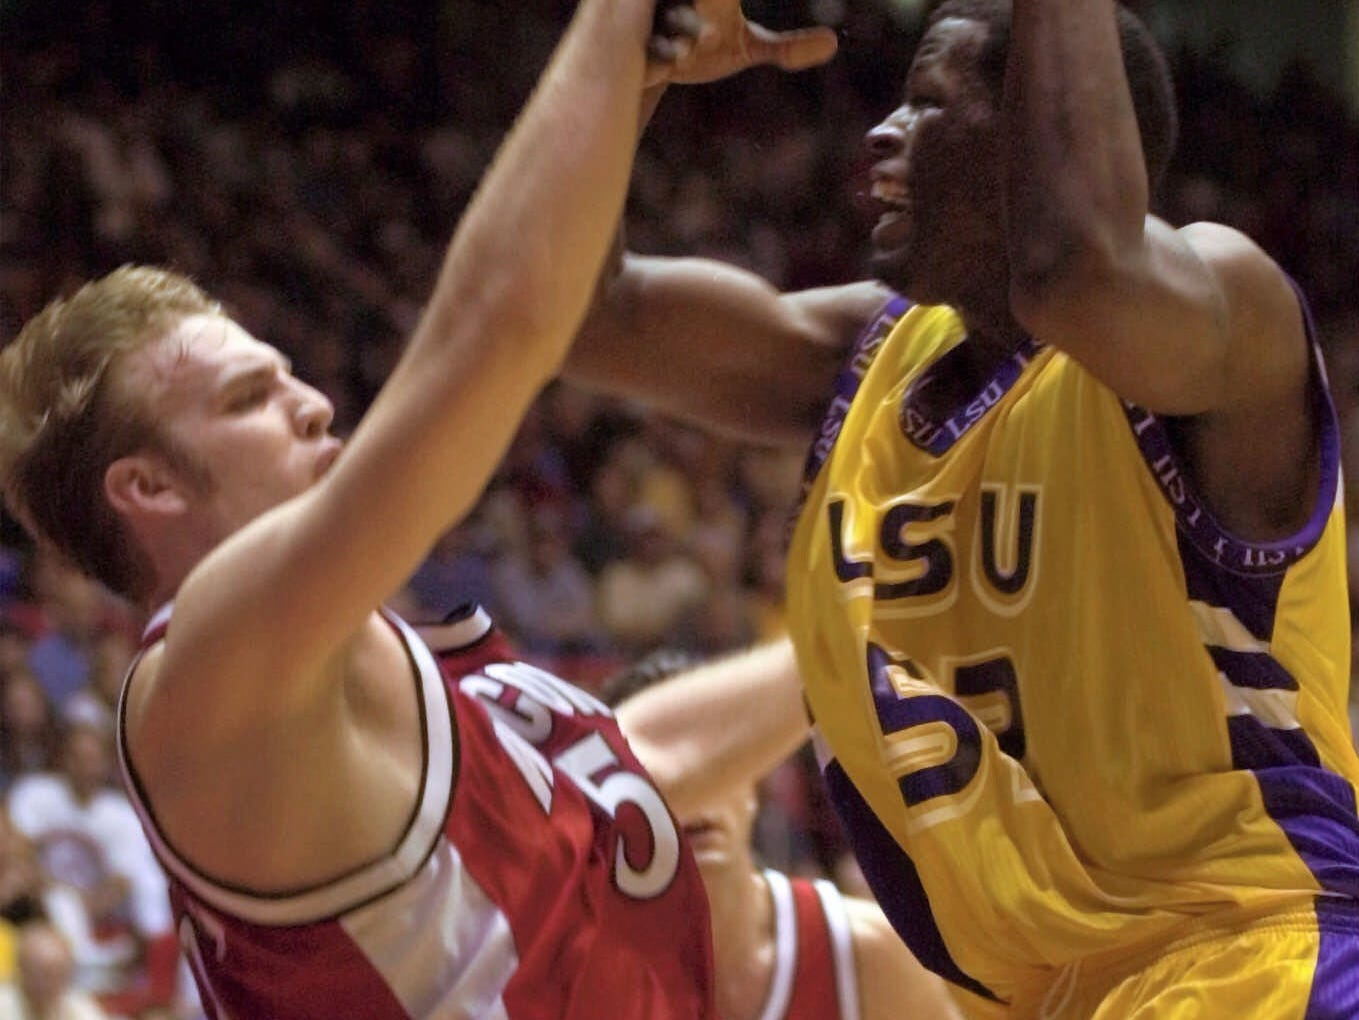 Wisconsin's Mark Vershaw, left, knocks the ball away from LSU's Jabari Smith during the second half of their NCAA West Regional semi-final game Thursday, March 23, 2000, in Albuquerque, N.M.